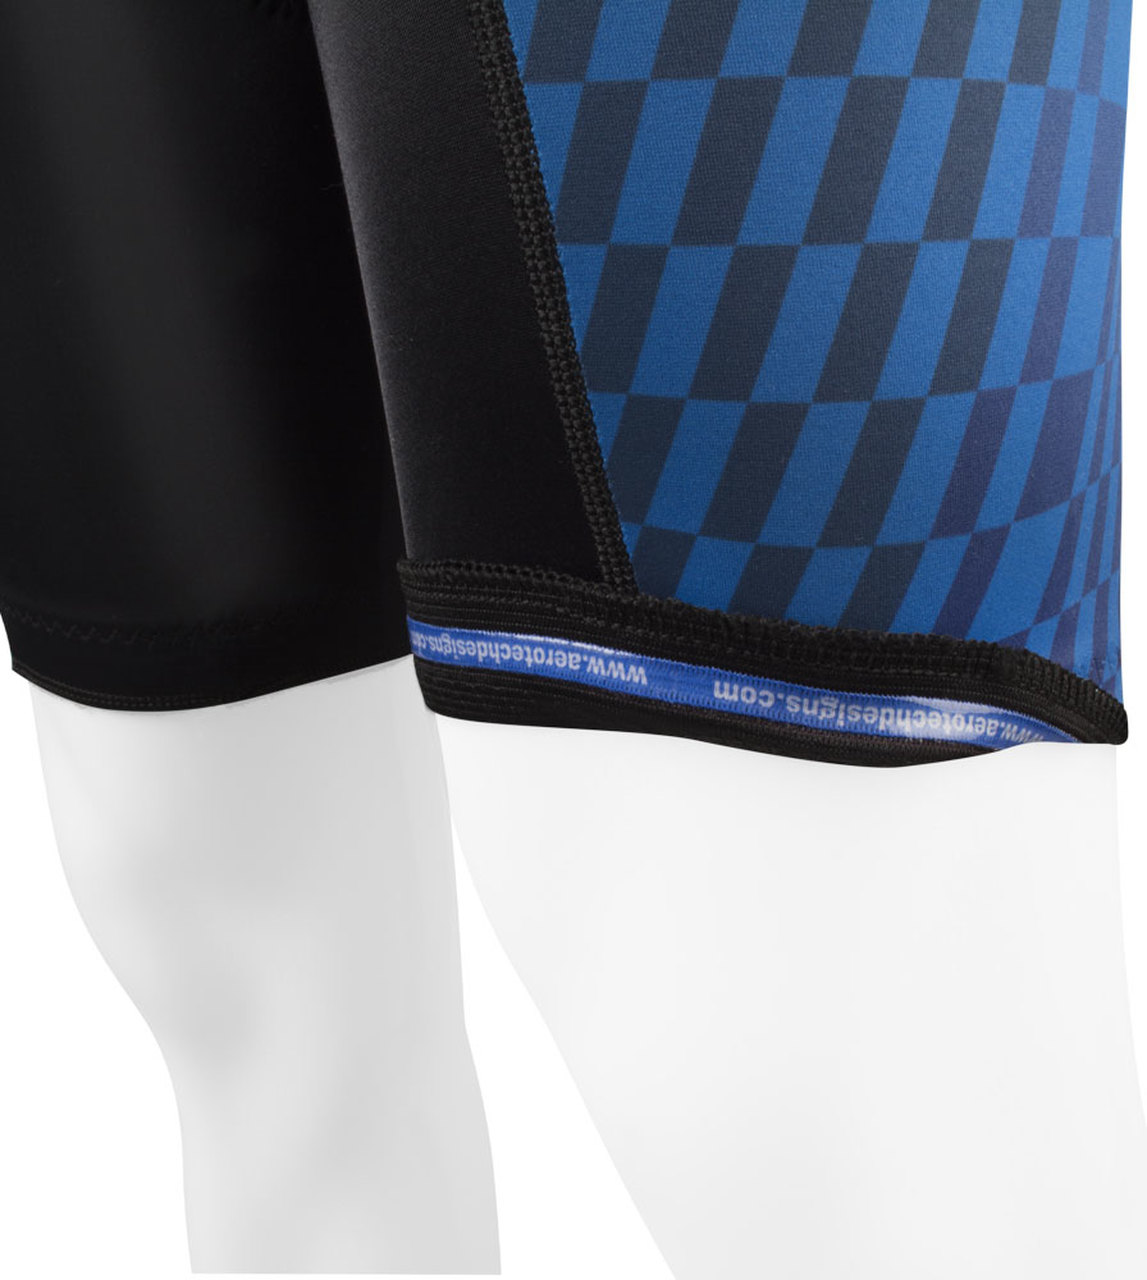 atd-power-tread-padded-bike-shorts-made-in-usa-silicone-gripper.jpg